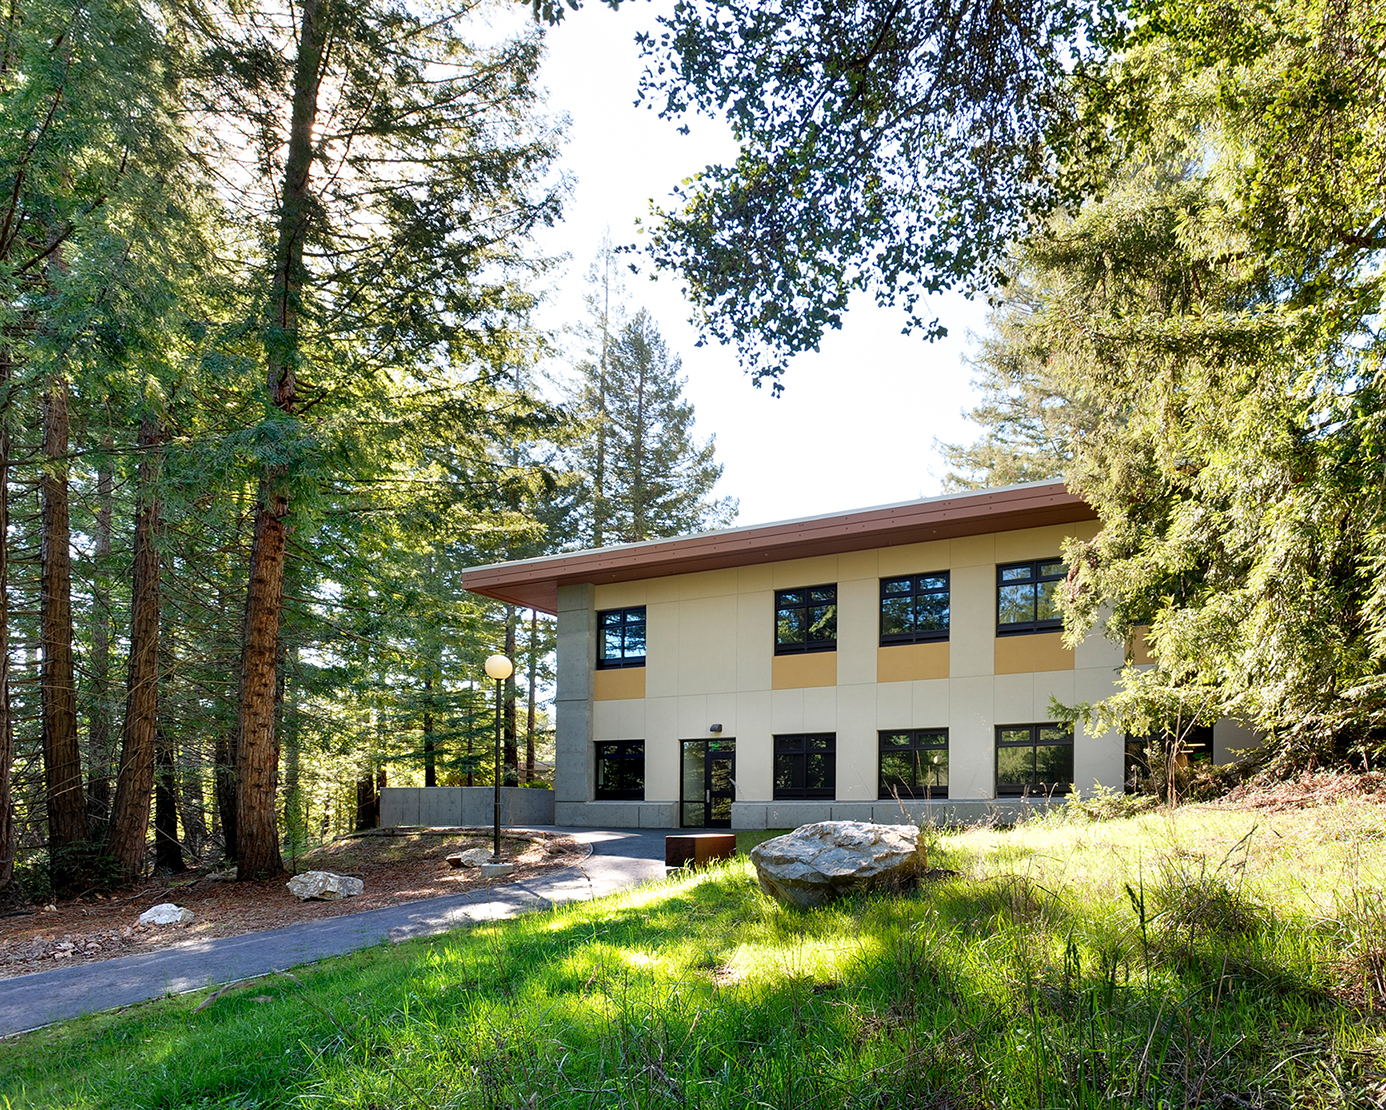 UCSC Cowell Student Health Center